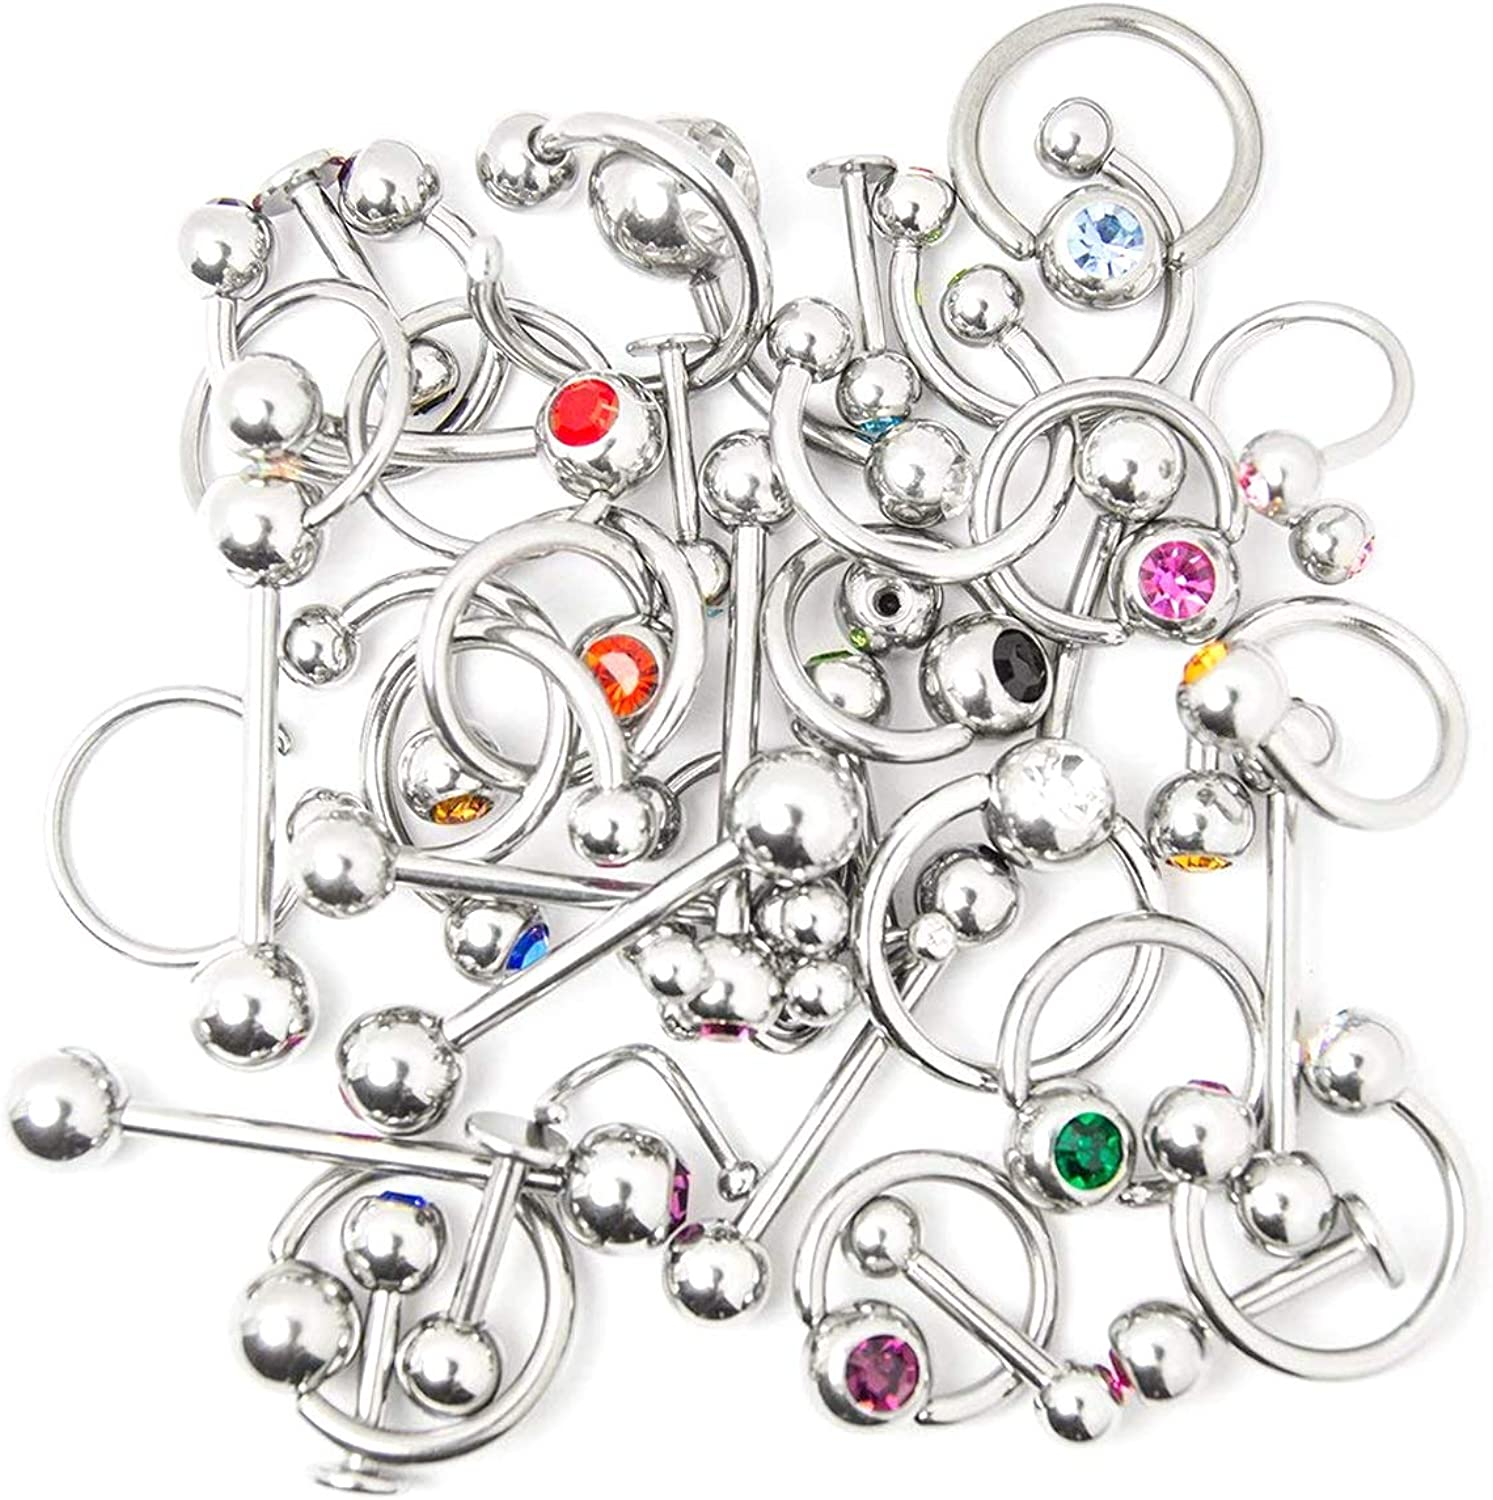 Overstock Body Jewelry - 40 Pieces Mixed 316L Surgical Steel - Lip, Ear, Nipple, Tongue